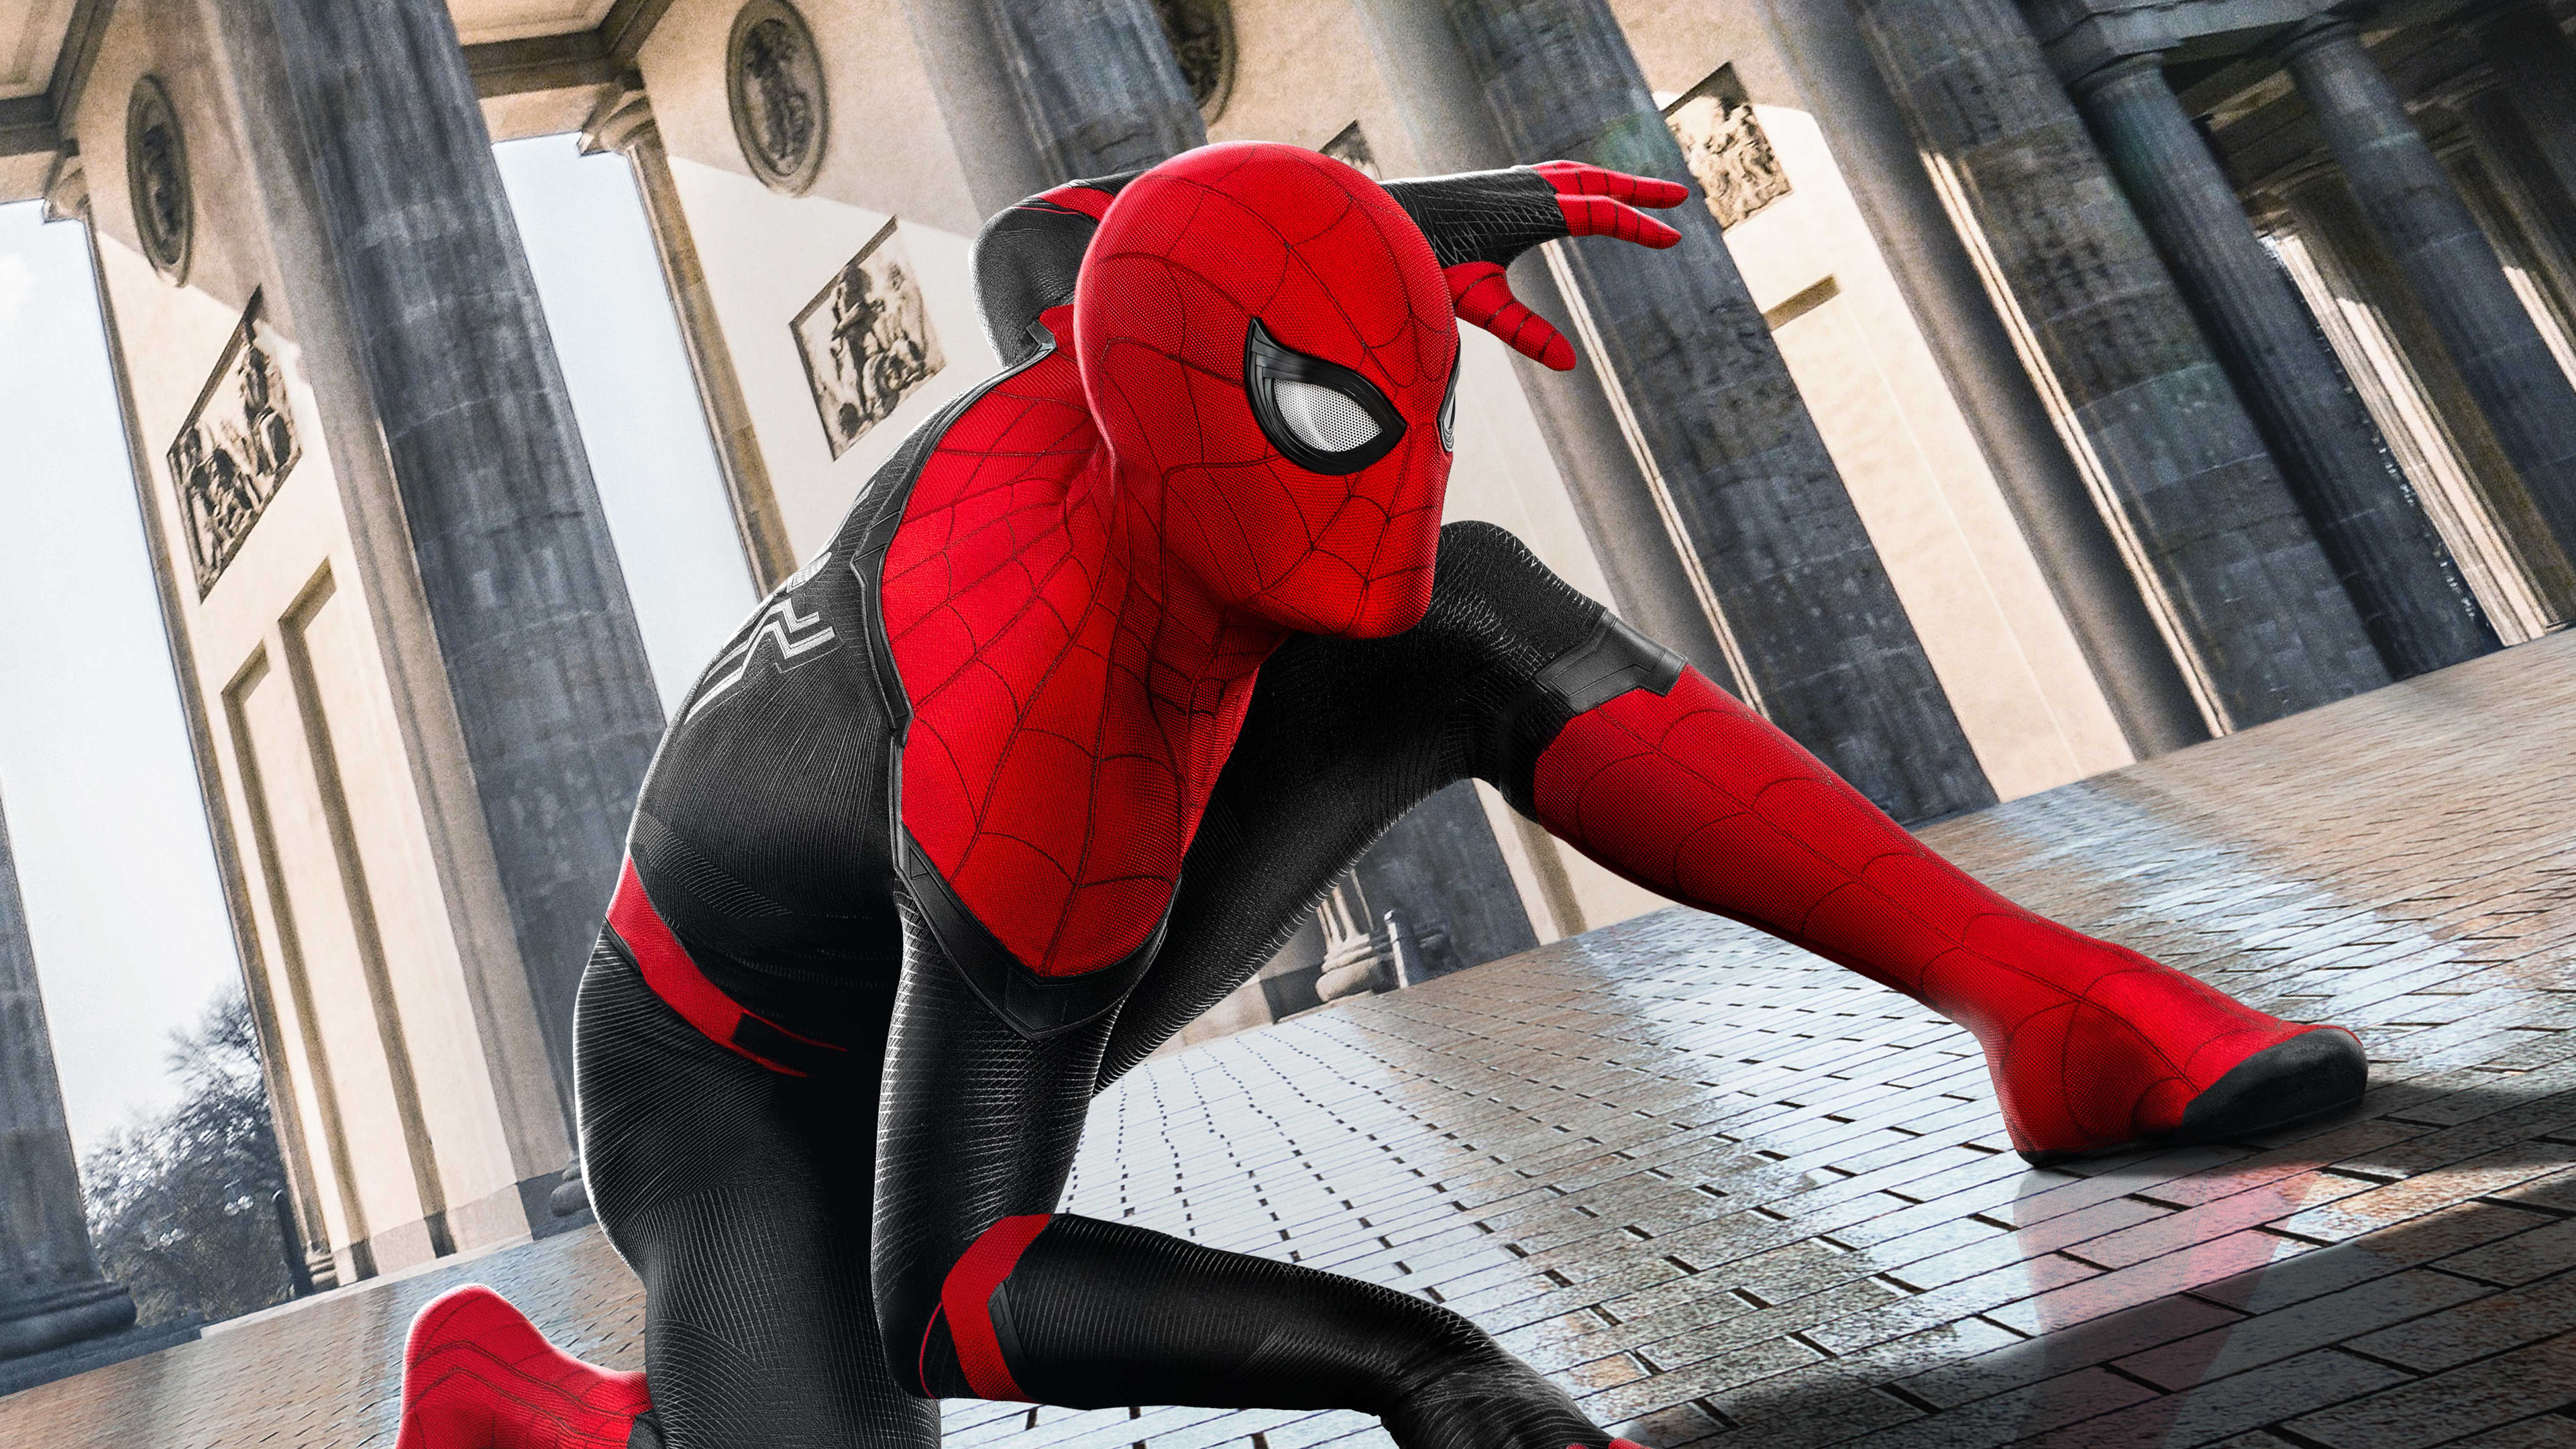 spider man far from home 4k 1555208701 - Spider Man Far From Home 4k - tom holland wallpapers, superheroes wallpapers, spiderman wallpapers, spiderman far from home wallpapers, movies wallpapers, hd-wallpapers, 5k wallpapers, 4k-wallpapers, 2019 movies wallpapers